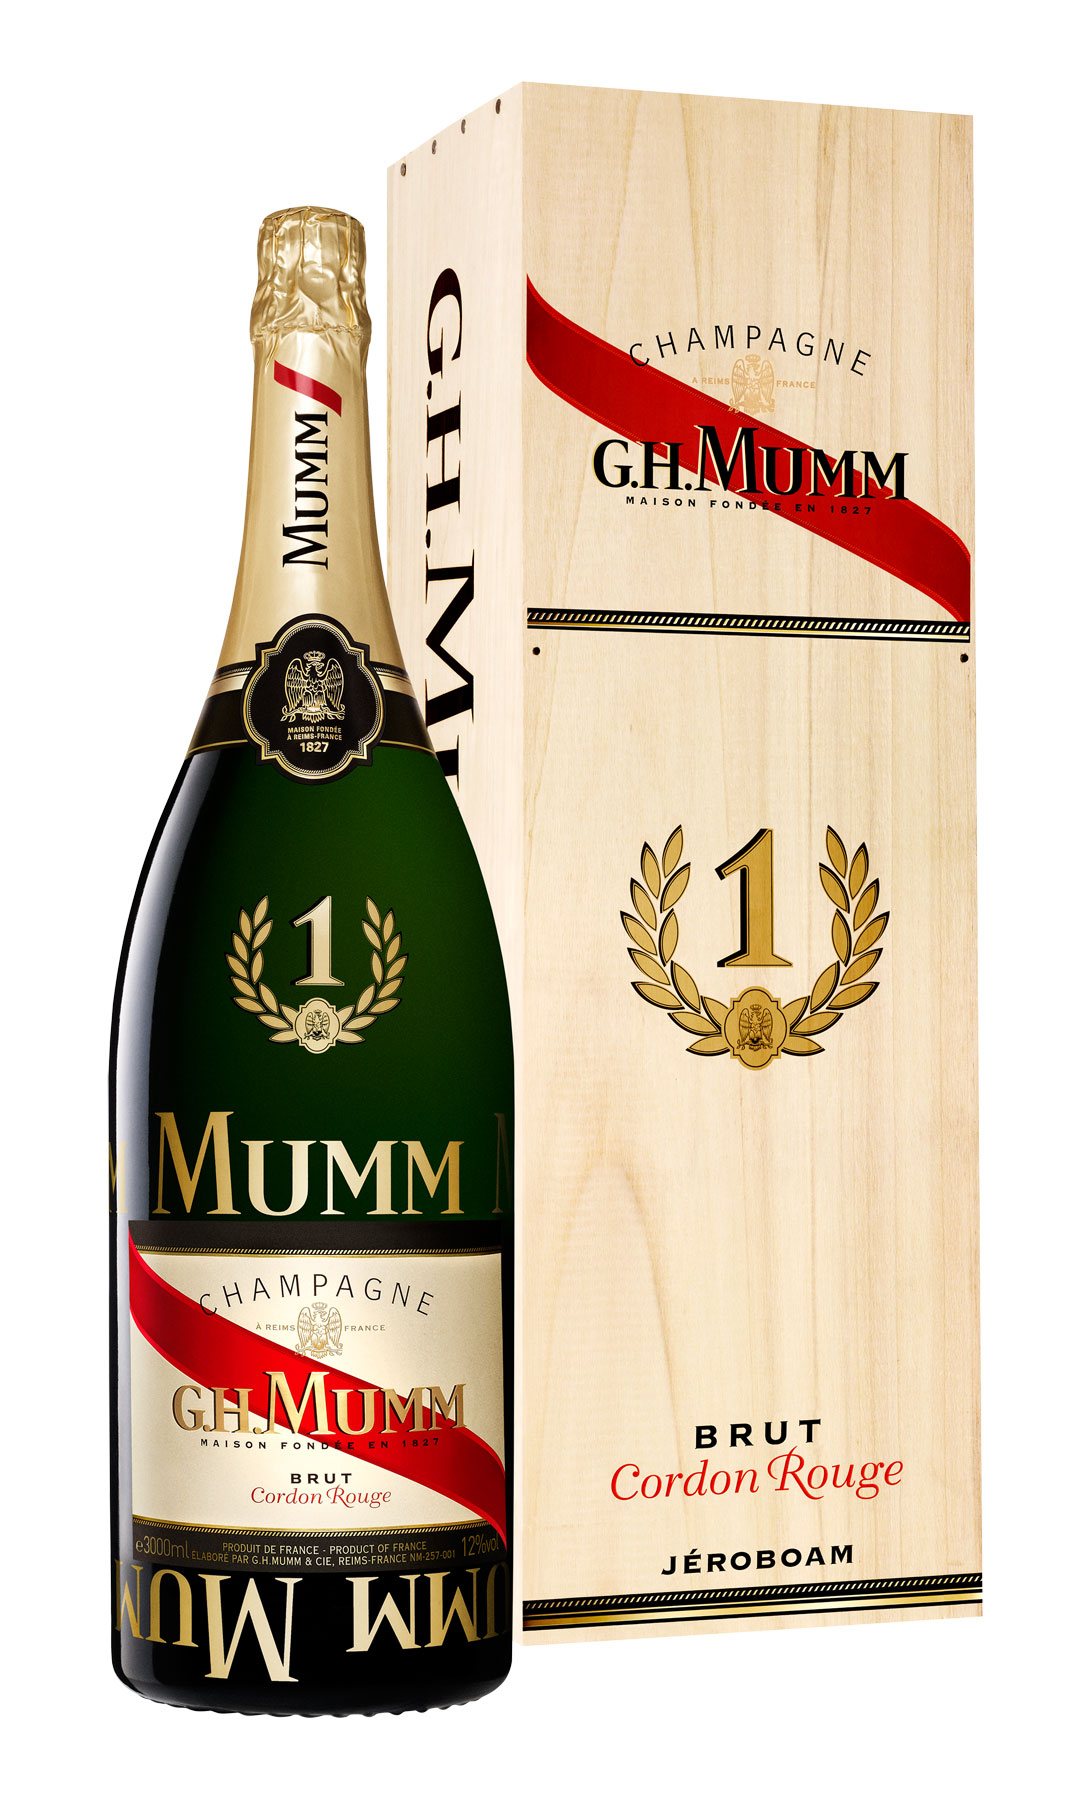 The Limited Edition Mumm Champagne No1 Jeroboam